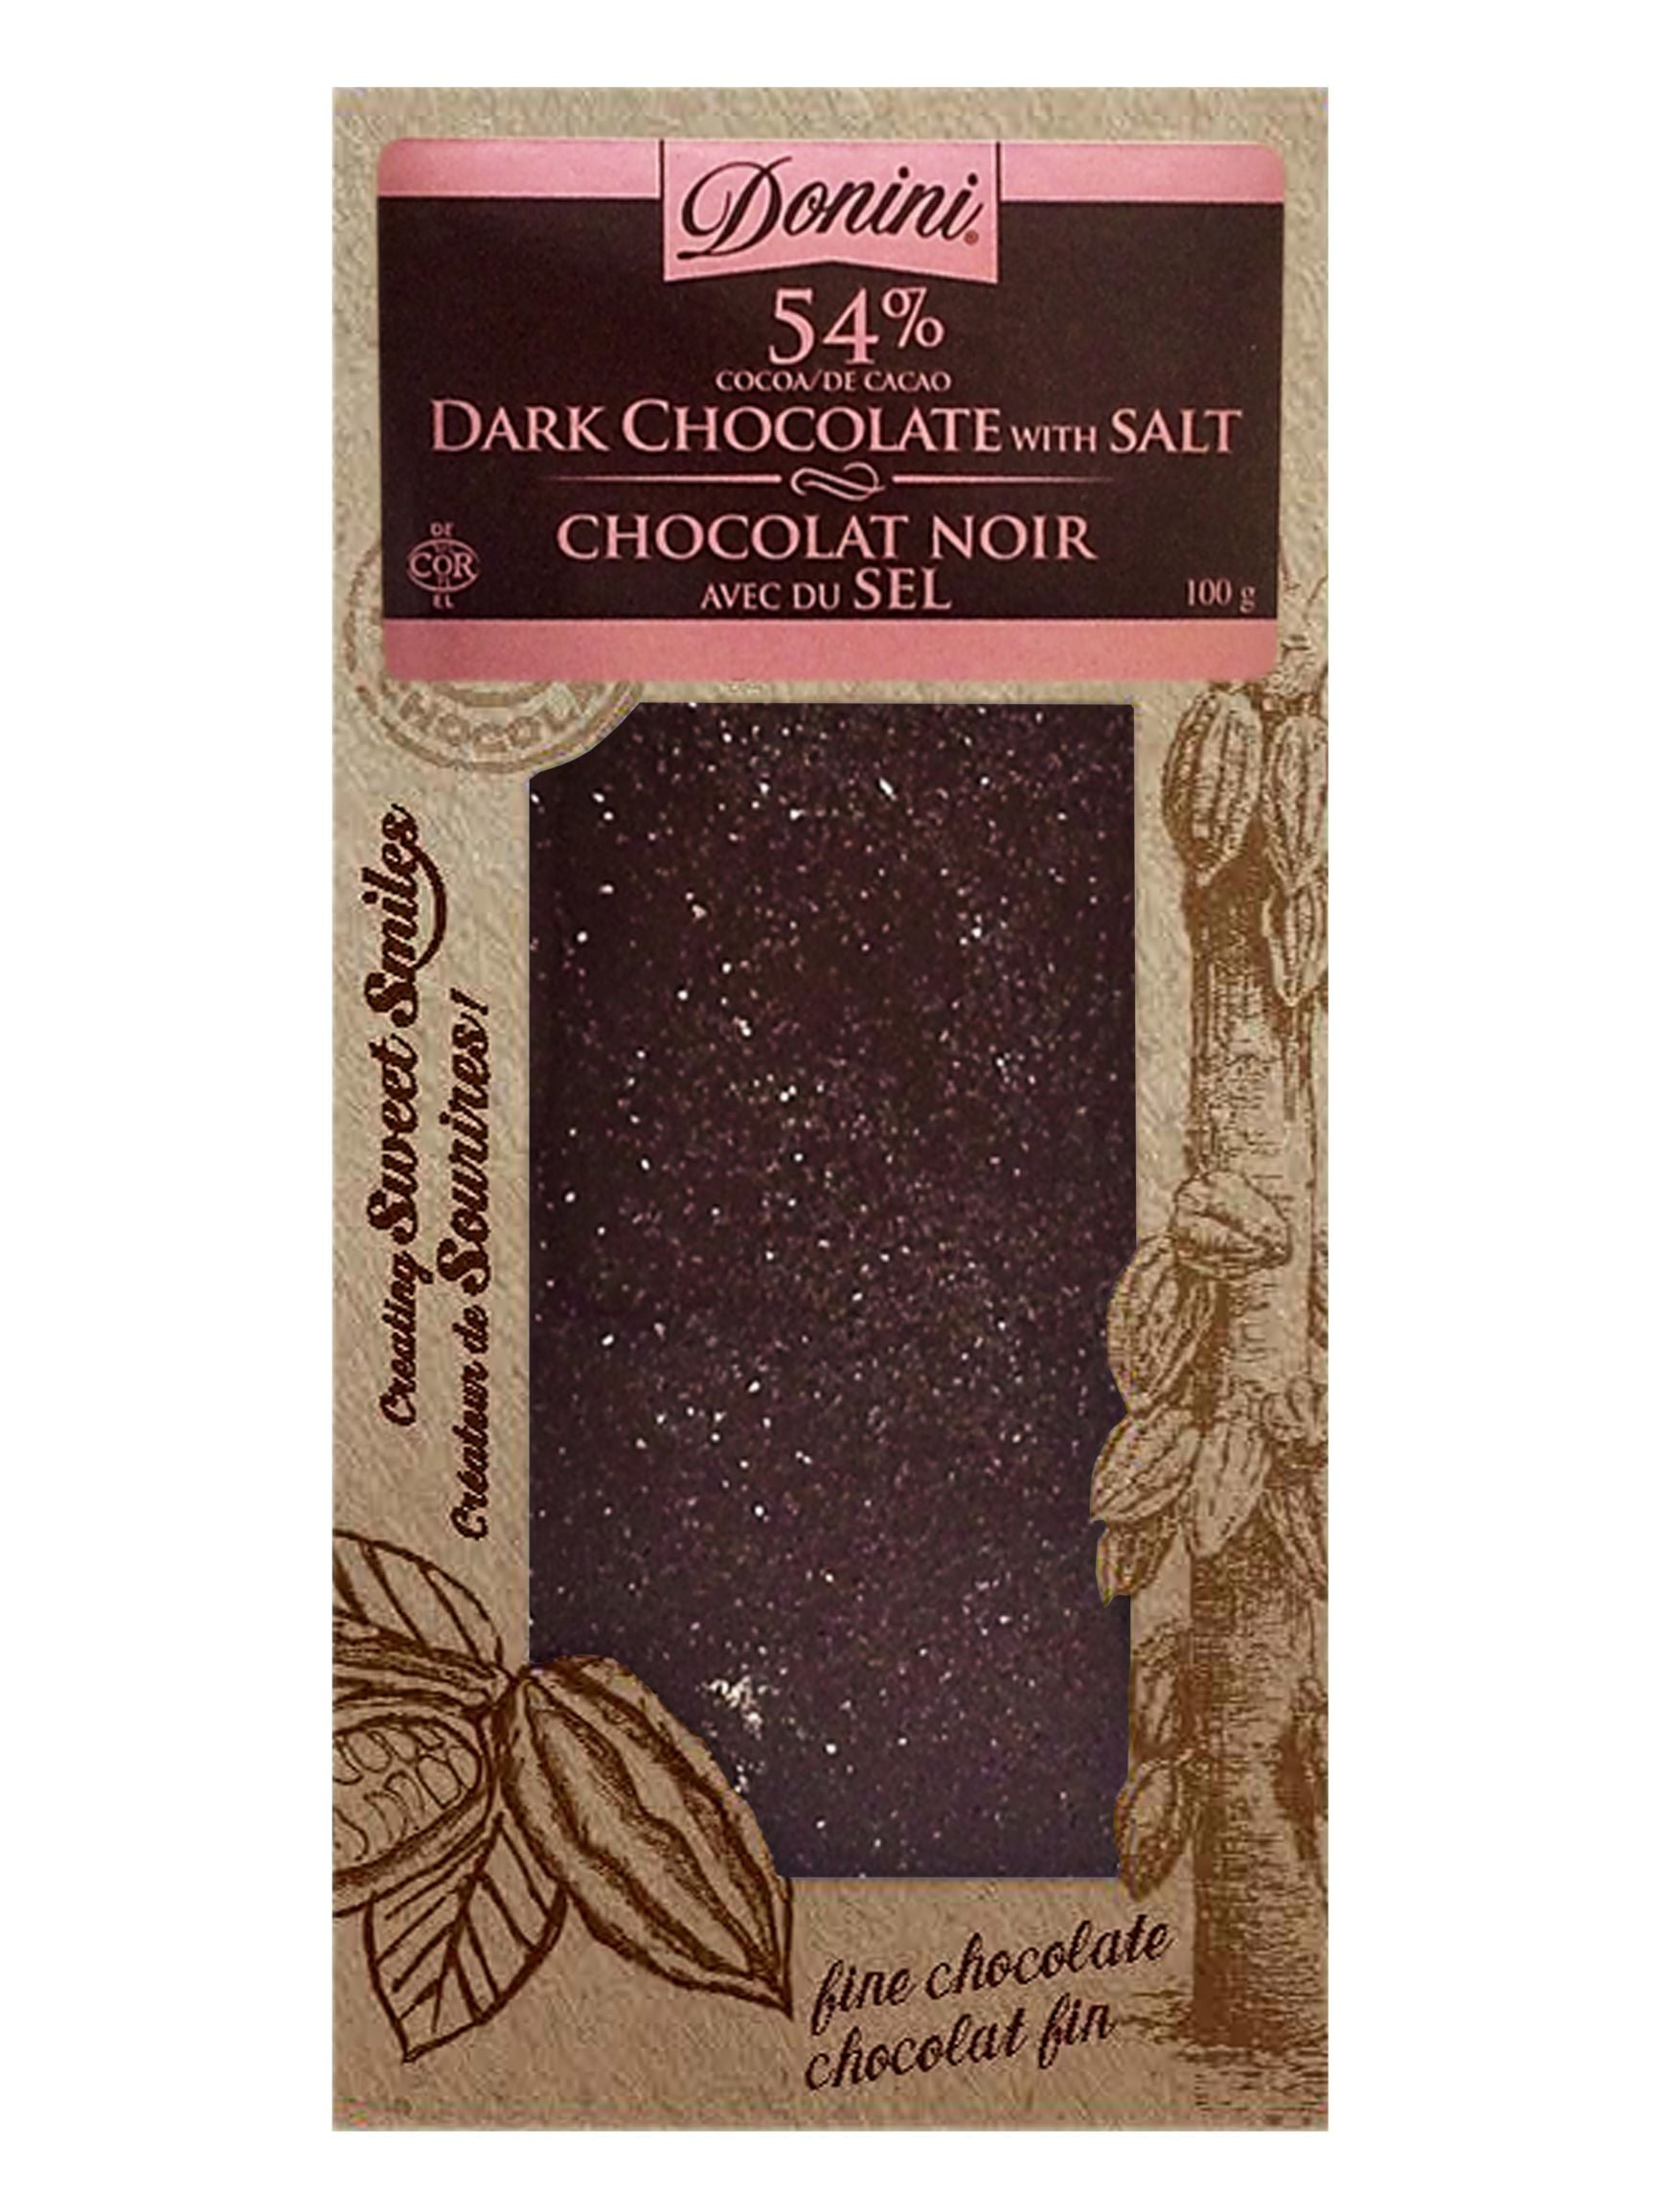 DONINI GOURMET CHOCOLATE BARS